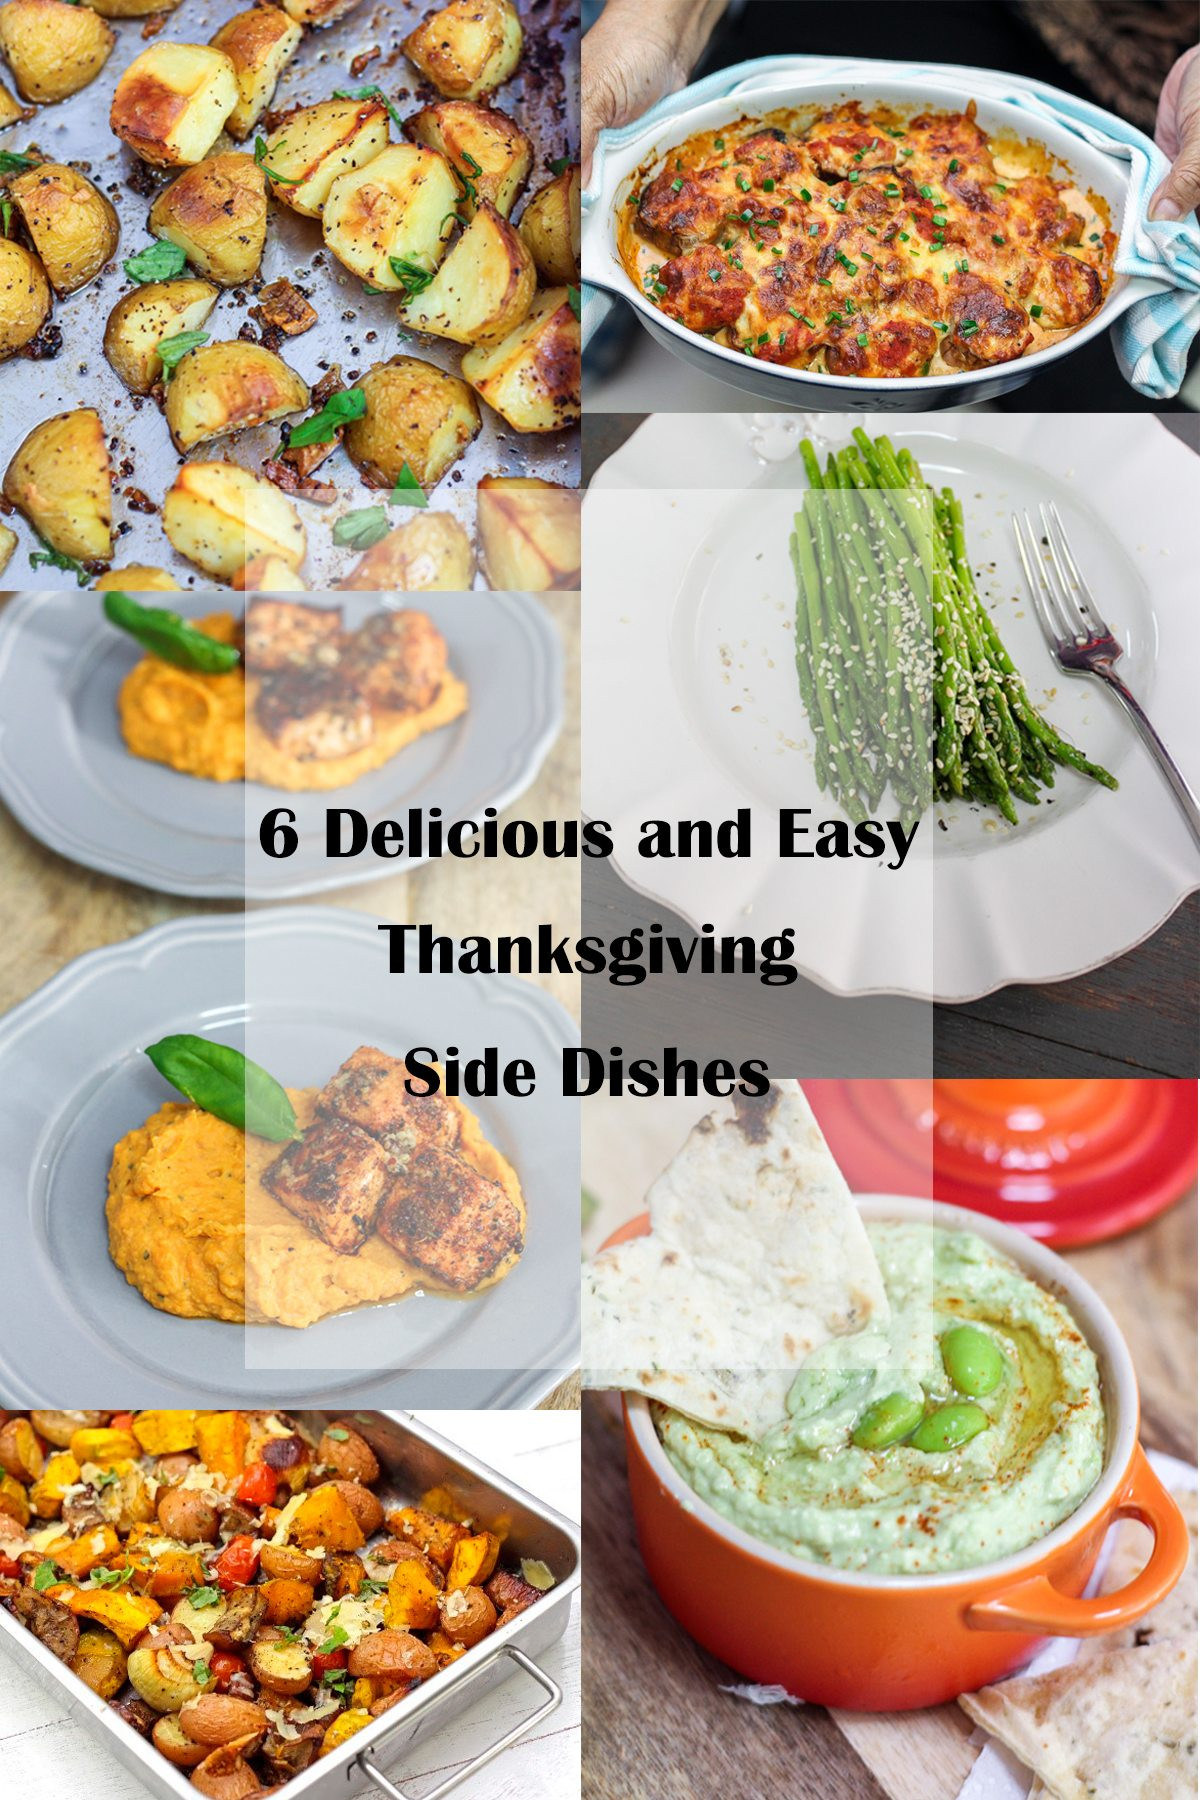 Side Dishes For Thanksgiving Easy  6 Delicious and Easy Thanksgiving Side Dishes